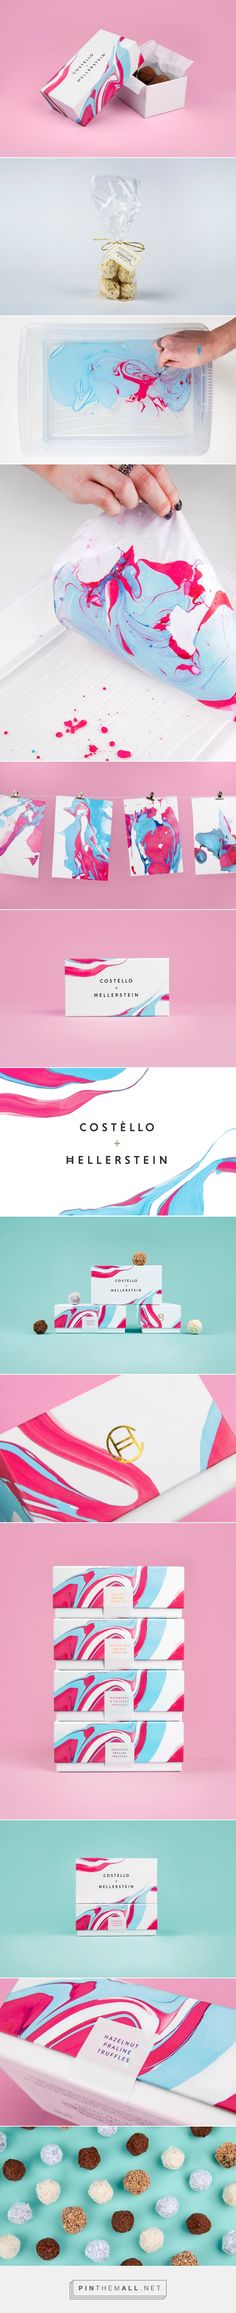 Packaging for Costèllo & Hellerstein by Robot Food — BP&O - created via http://pinthemall.net